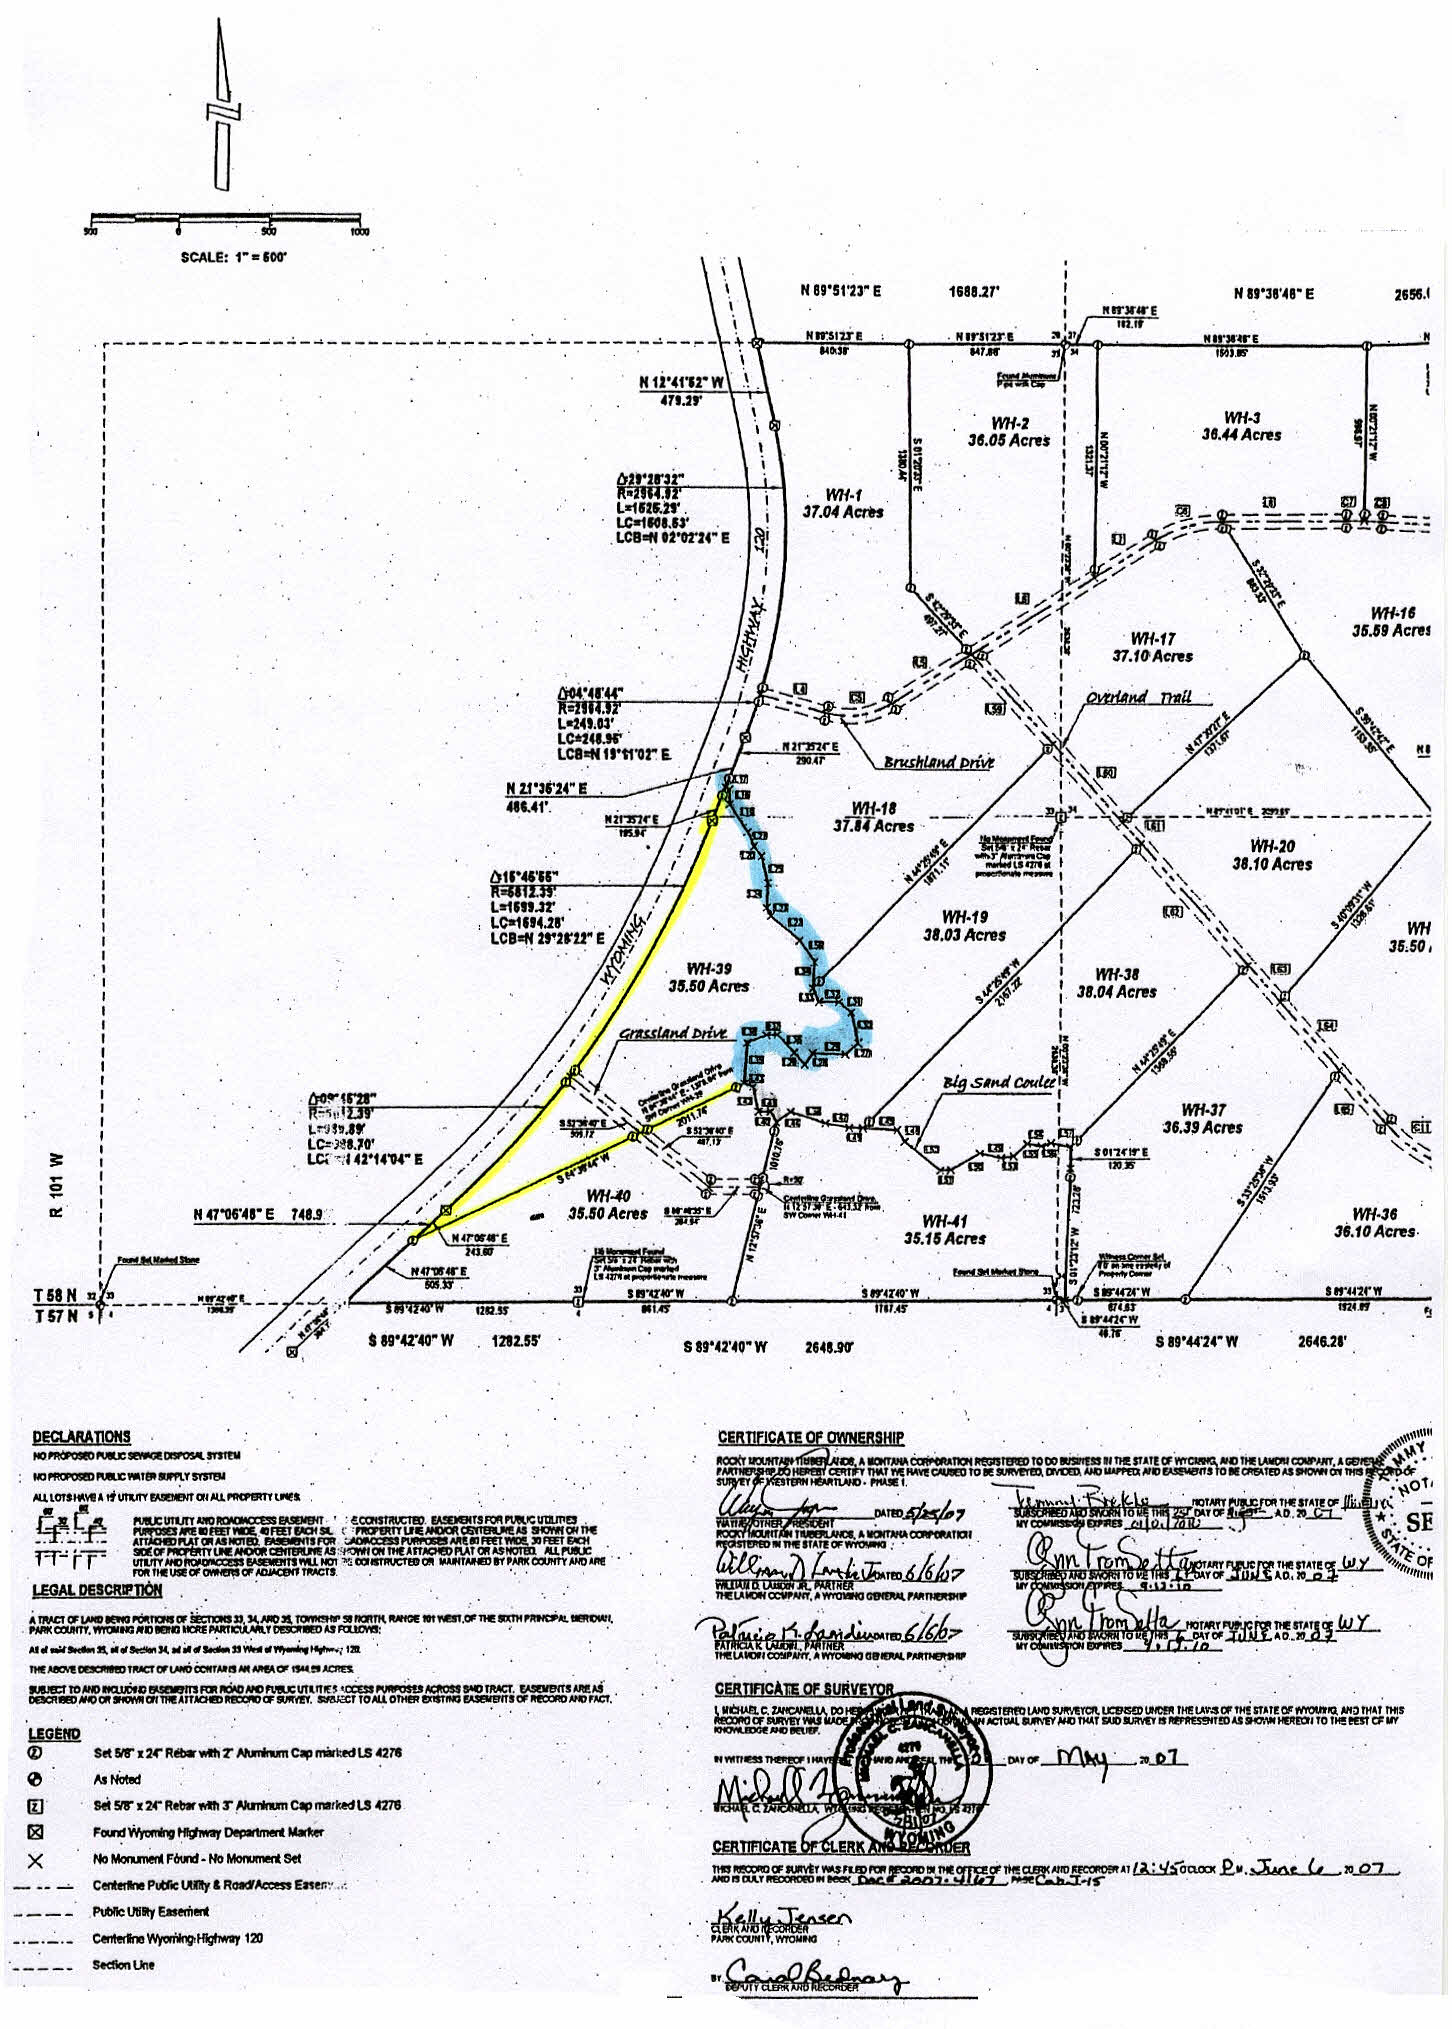 35 Acres With Creek Clark Wyoming Vacant Land For Sale